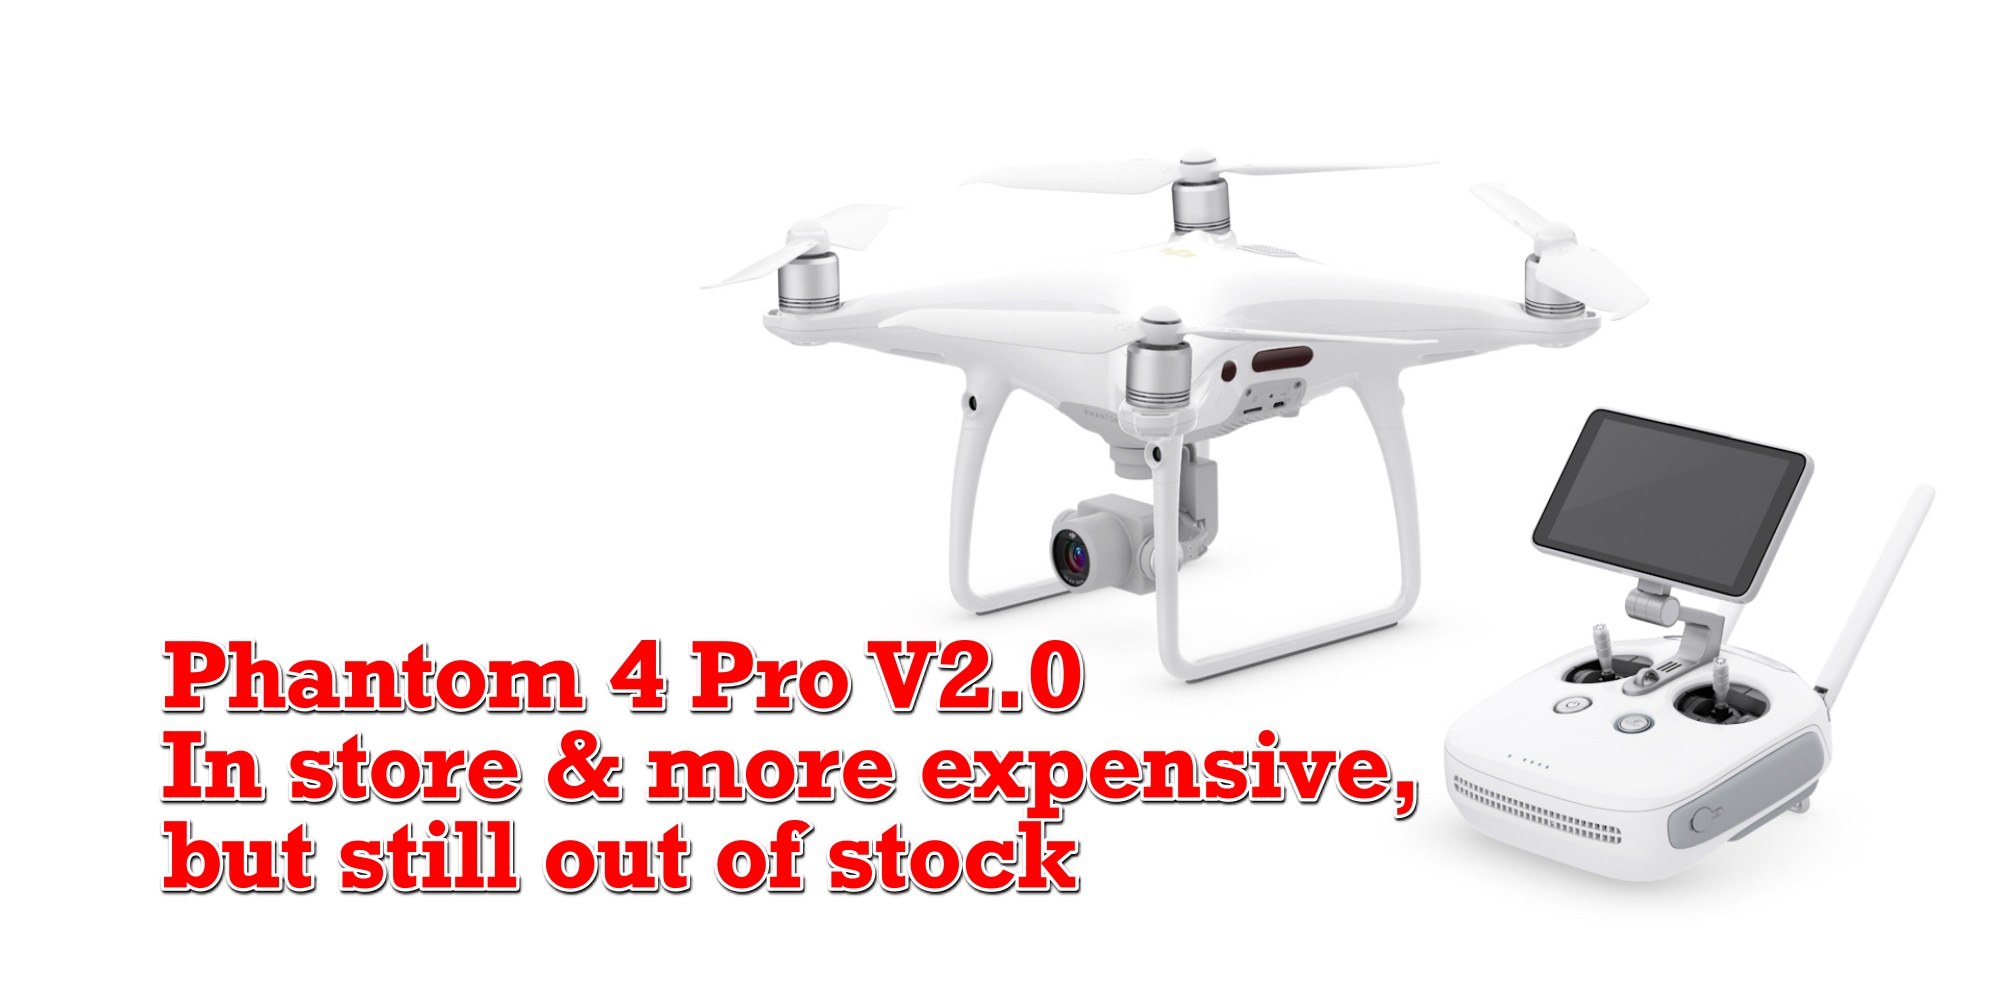 Phantom 4 Pro V2.0 back in DJI online store – higher price and out of stock